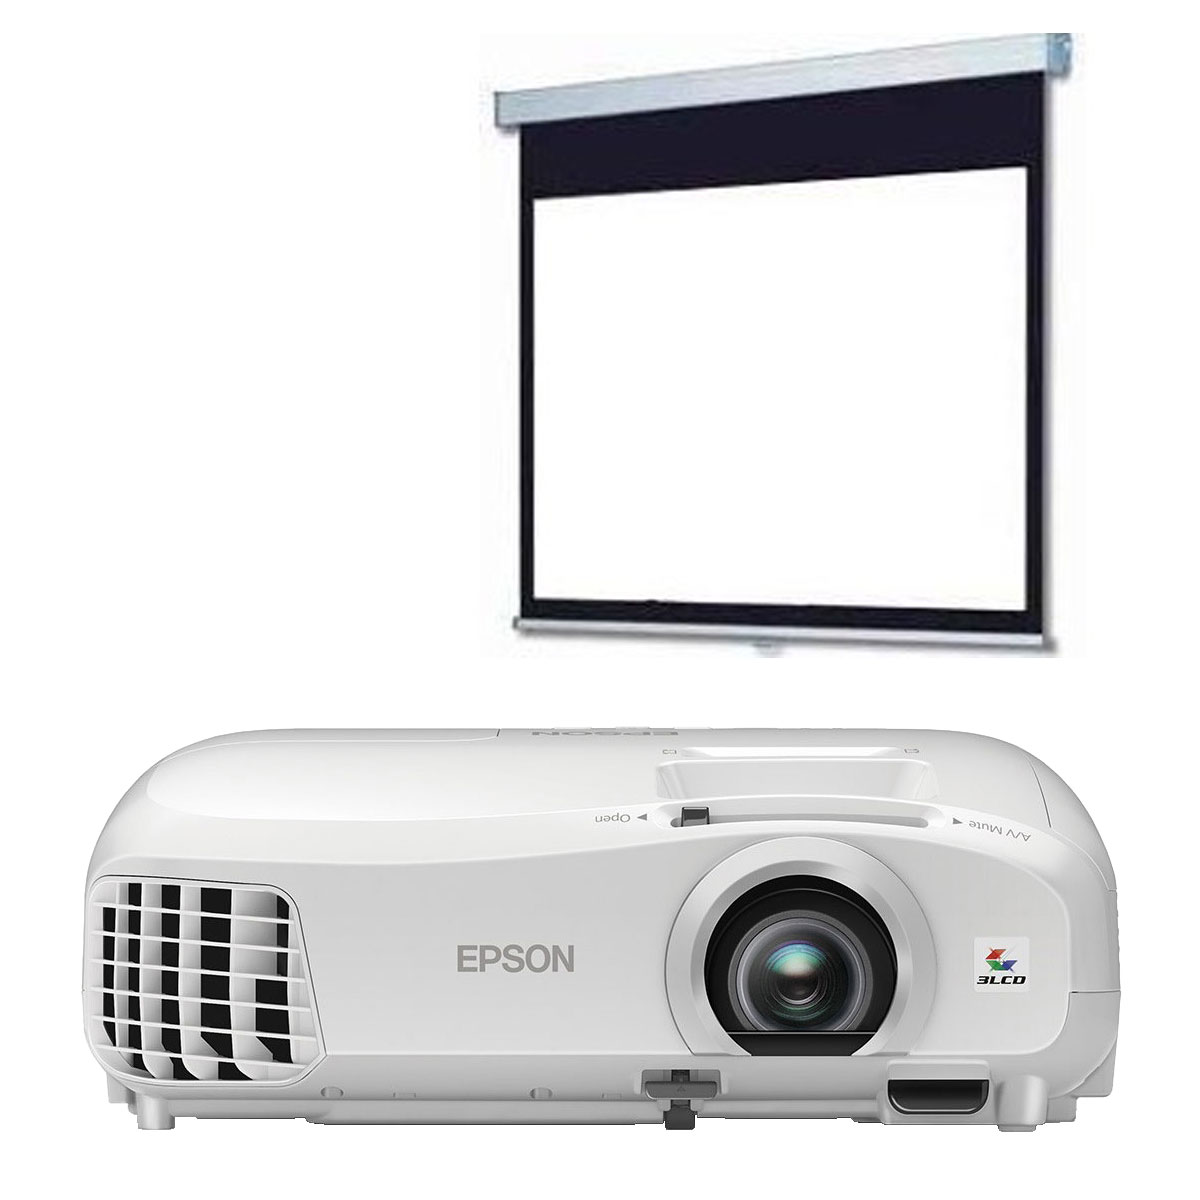 epson eh tw5210 ldlc cran manuel 16 9 220 x 124 cm vid oprojecteur epson sur. Black Bedroom Furniture Sets. Home Design Ideas